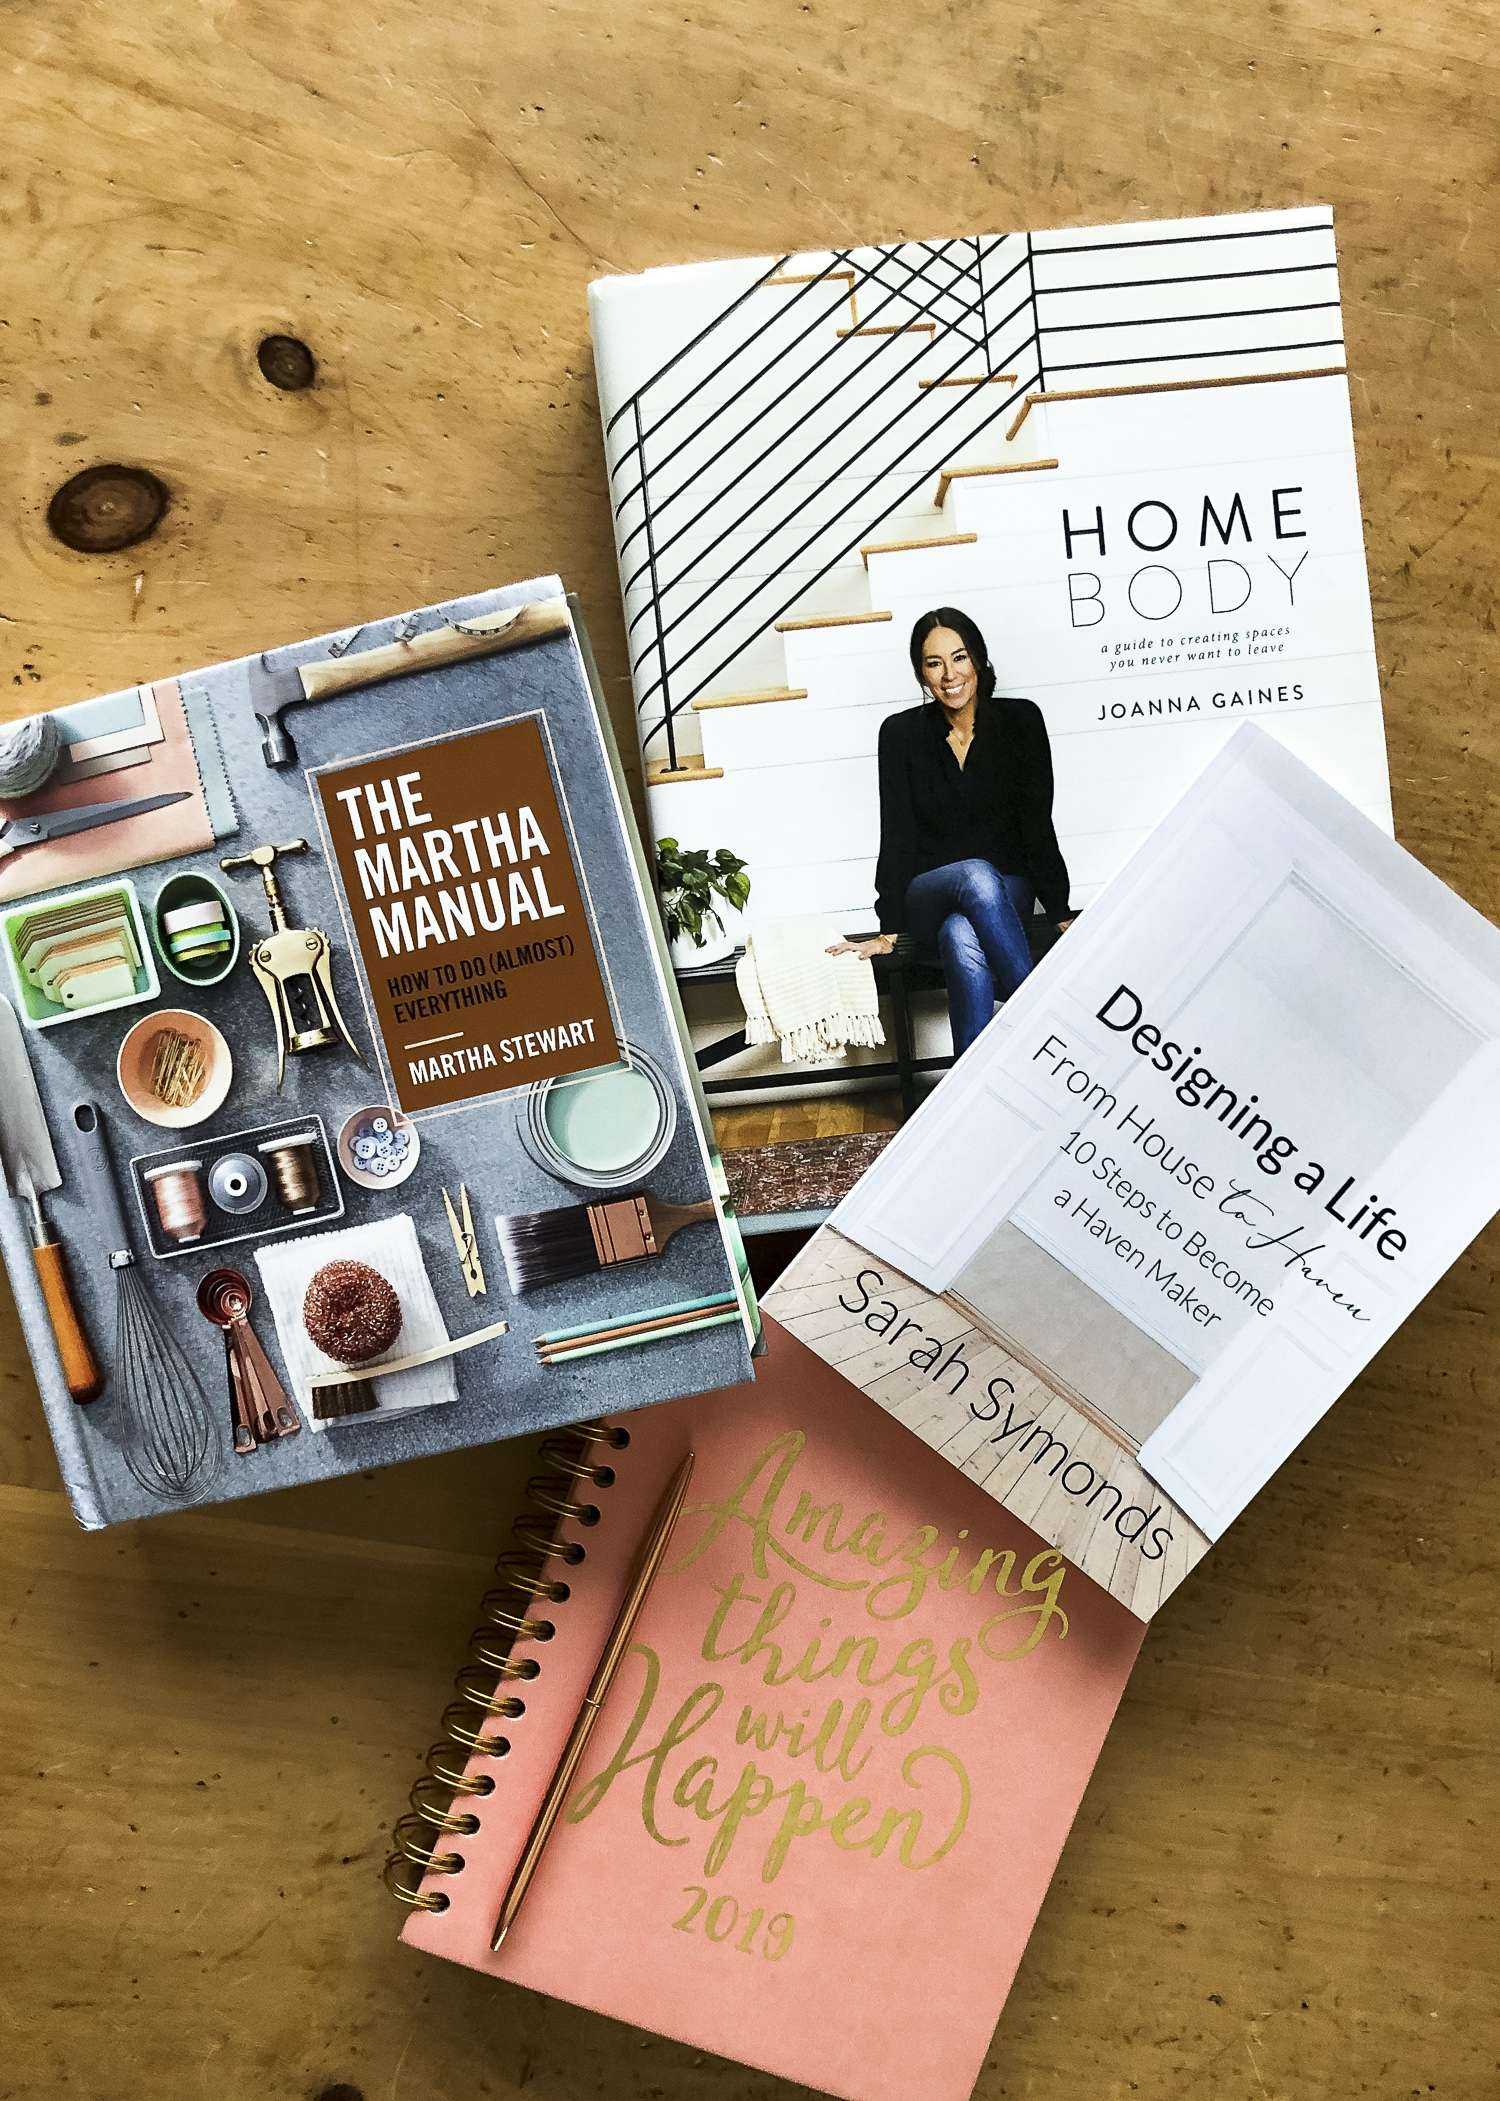 Are you looking for beginner interior design books? Today I'm reviewing 3 interior design books to showcase how each can help in your home design journey. #fromhousetohaven #interiordesign #interiordesignbooks #homedecor